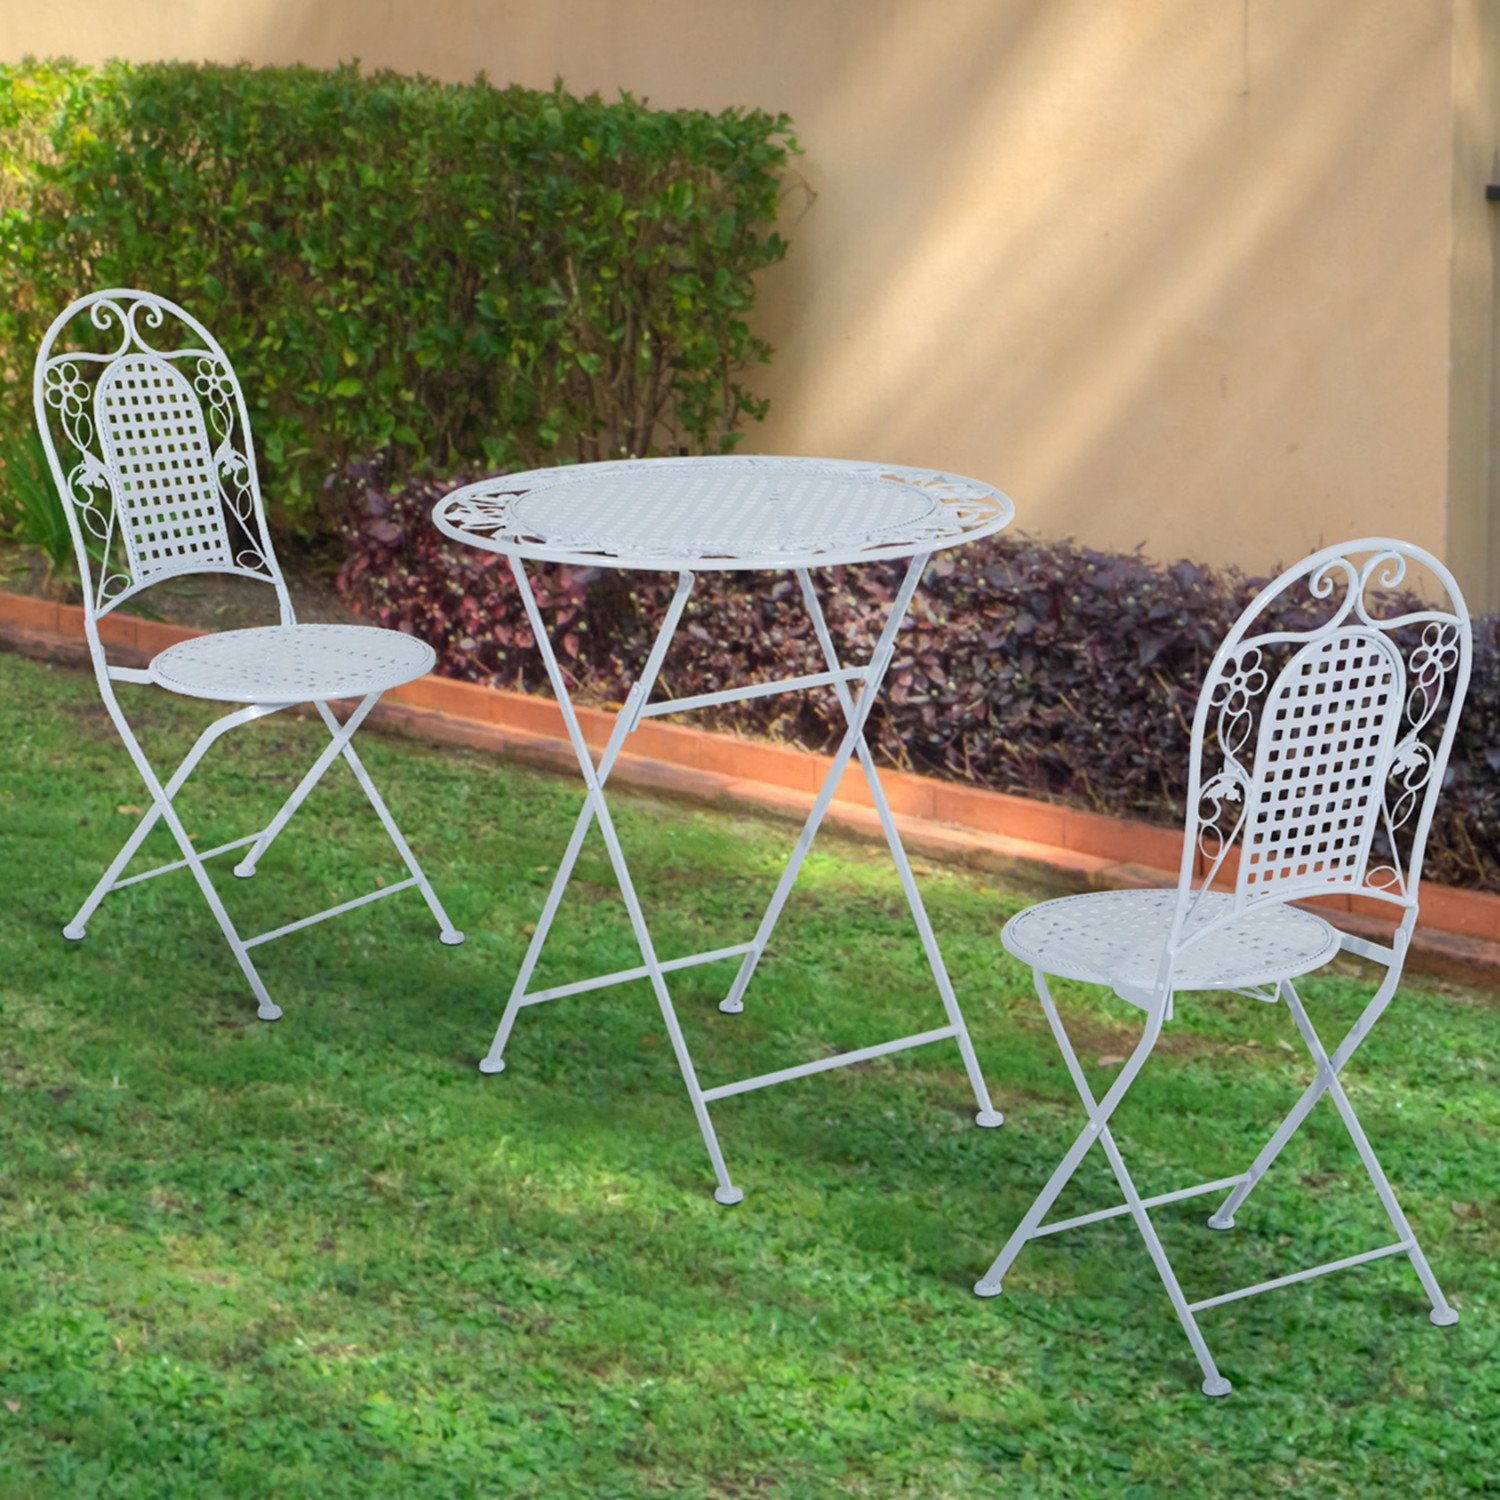 outdoor garden 3 piece patio metal bistro dining set table chair set 2